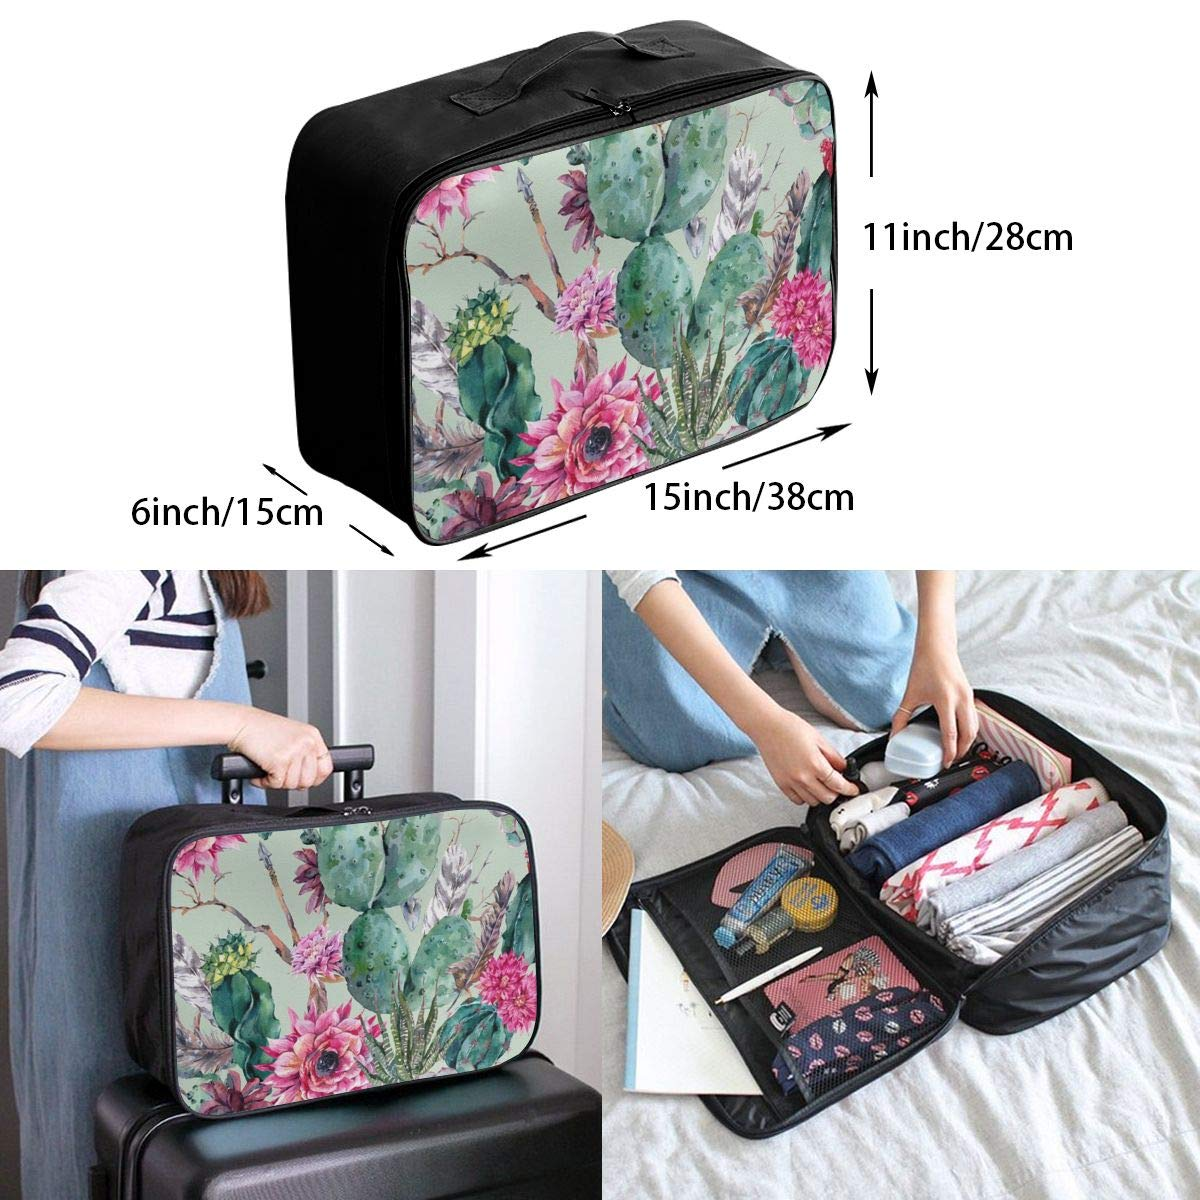 Portable Duffle Bag for Travel Gym Sports Lightweight Luggage Duffel Tote Bag for Men Women Cactus Flower Floral